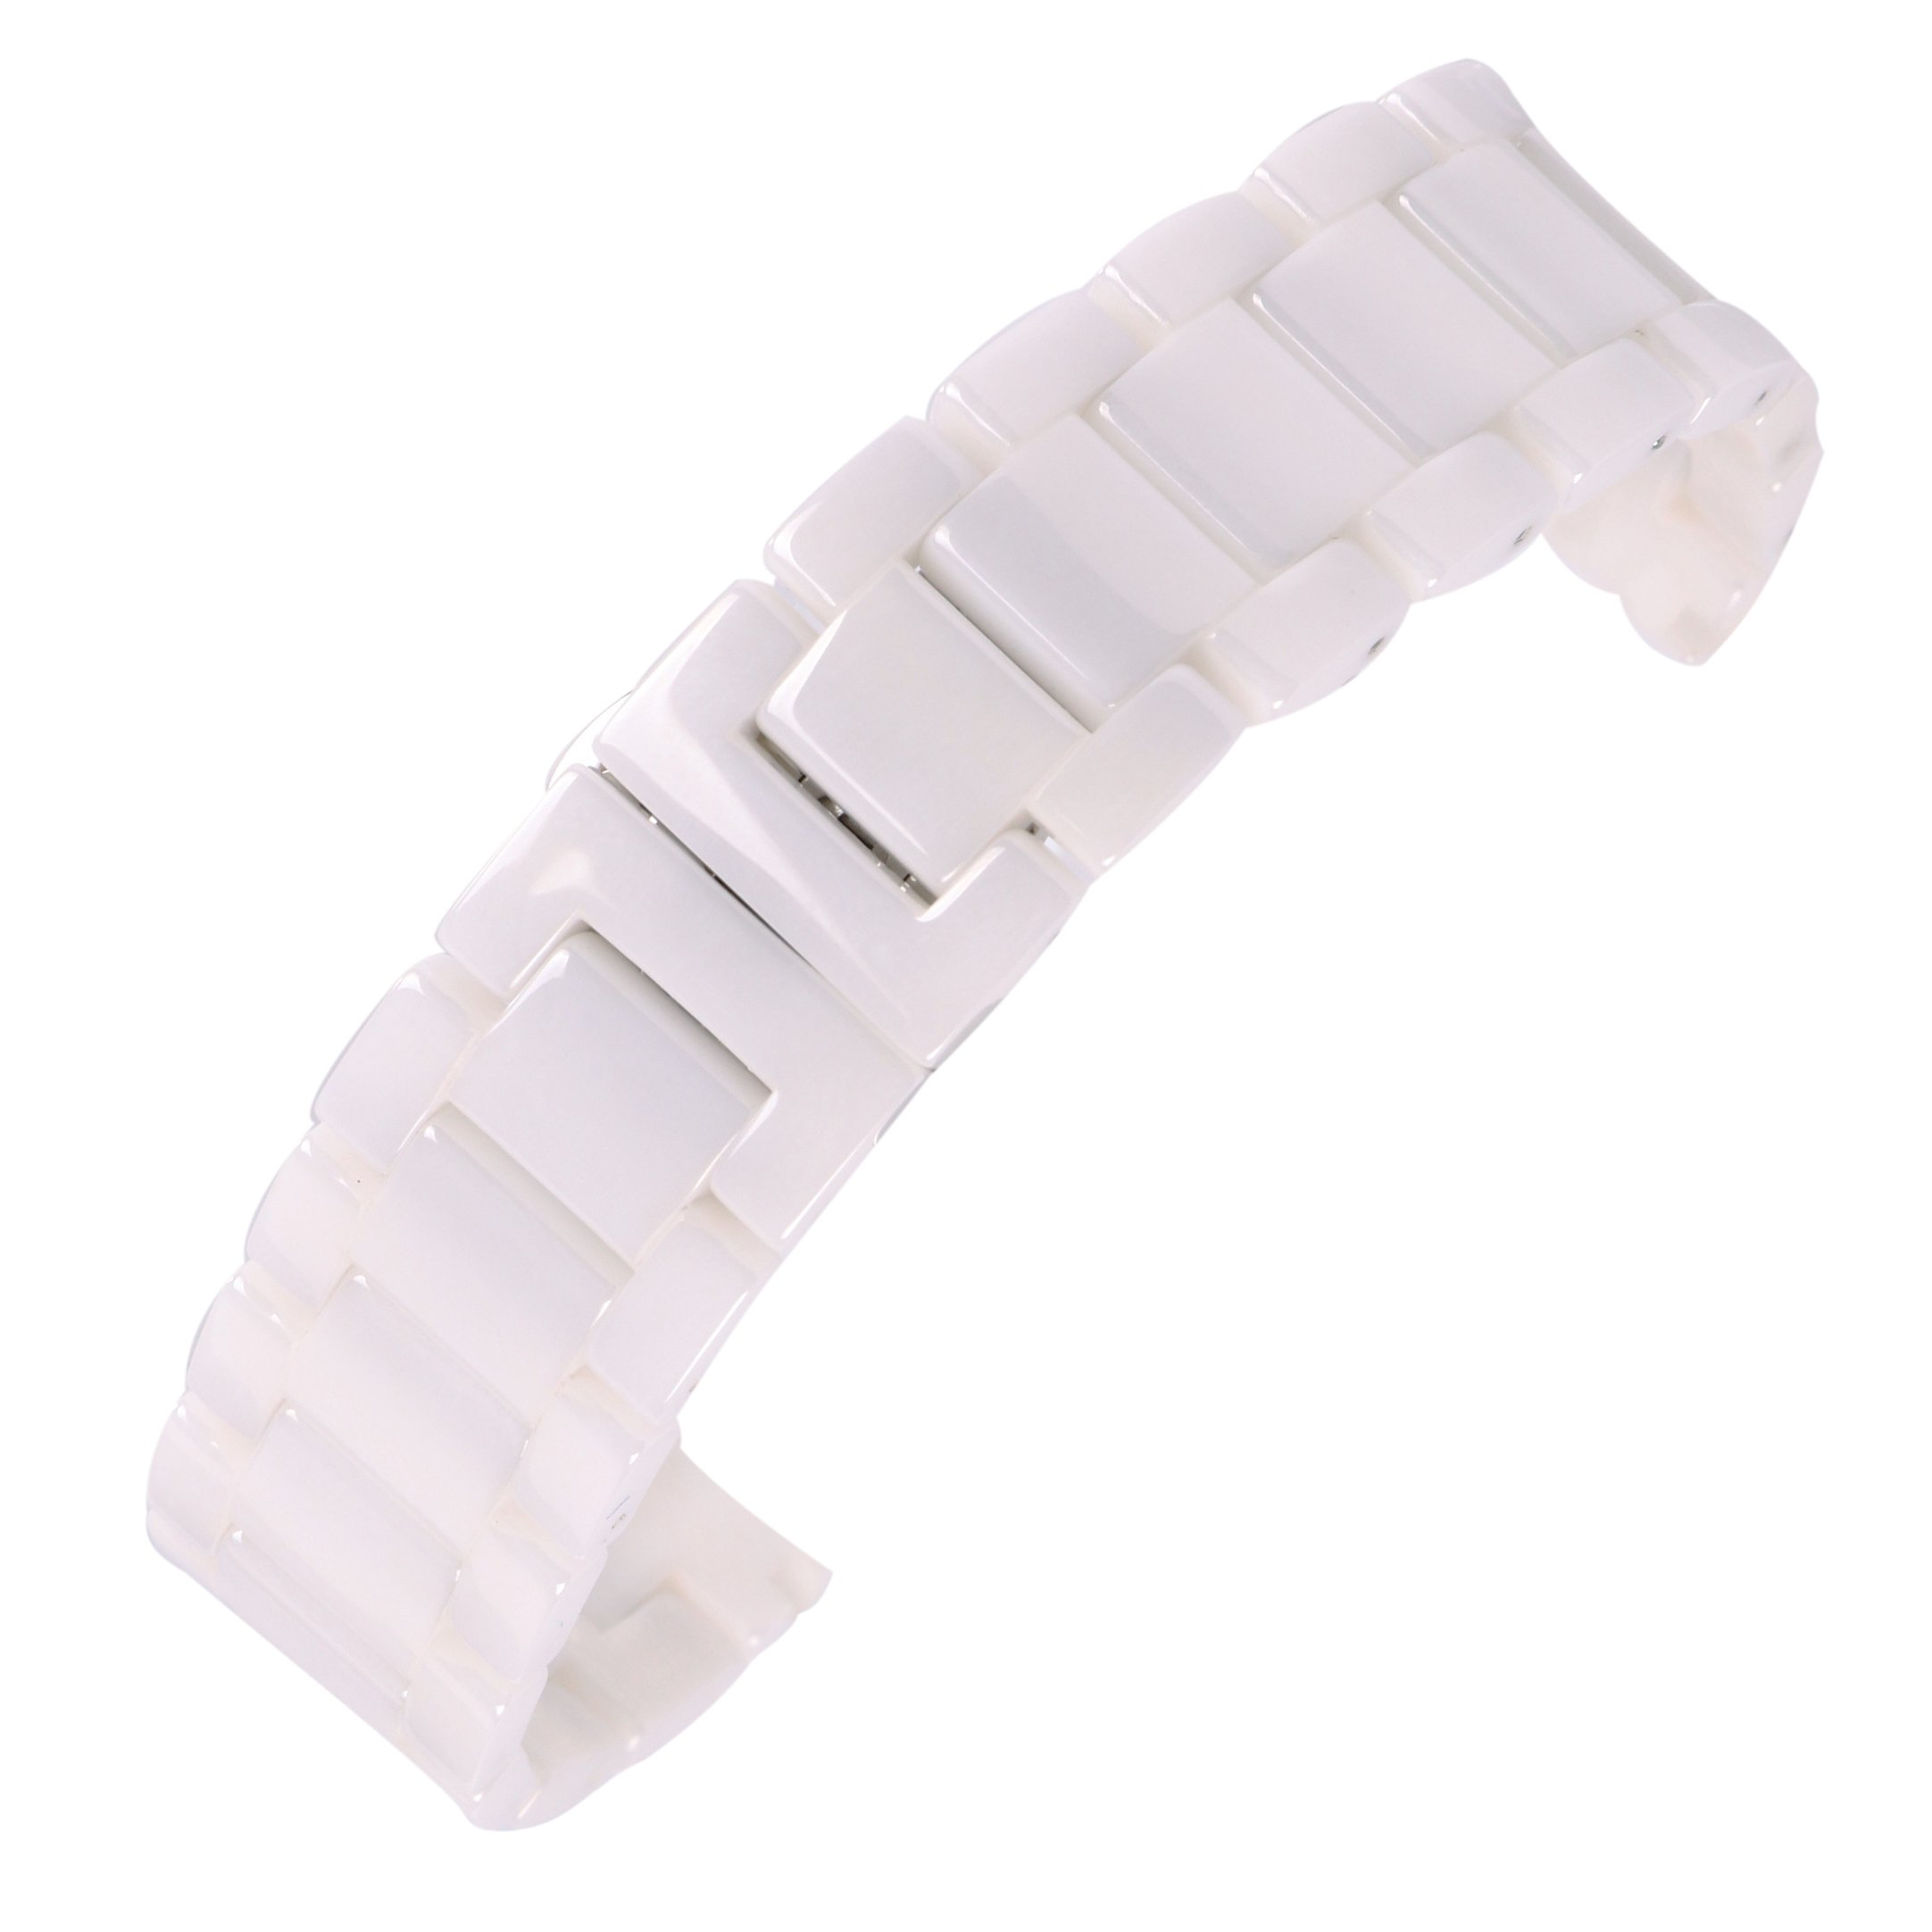 14mm luxury white Ceramic Watch Strap Replacement band for women's watch with stainless steel clasp